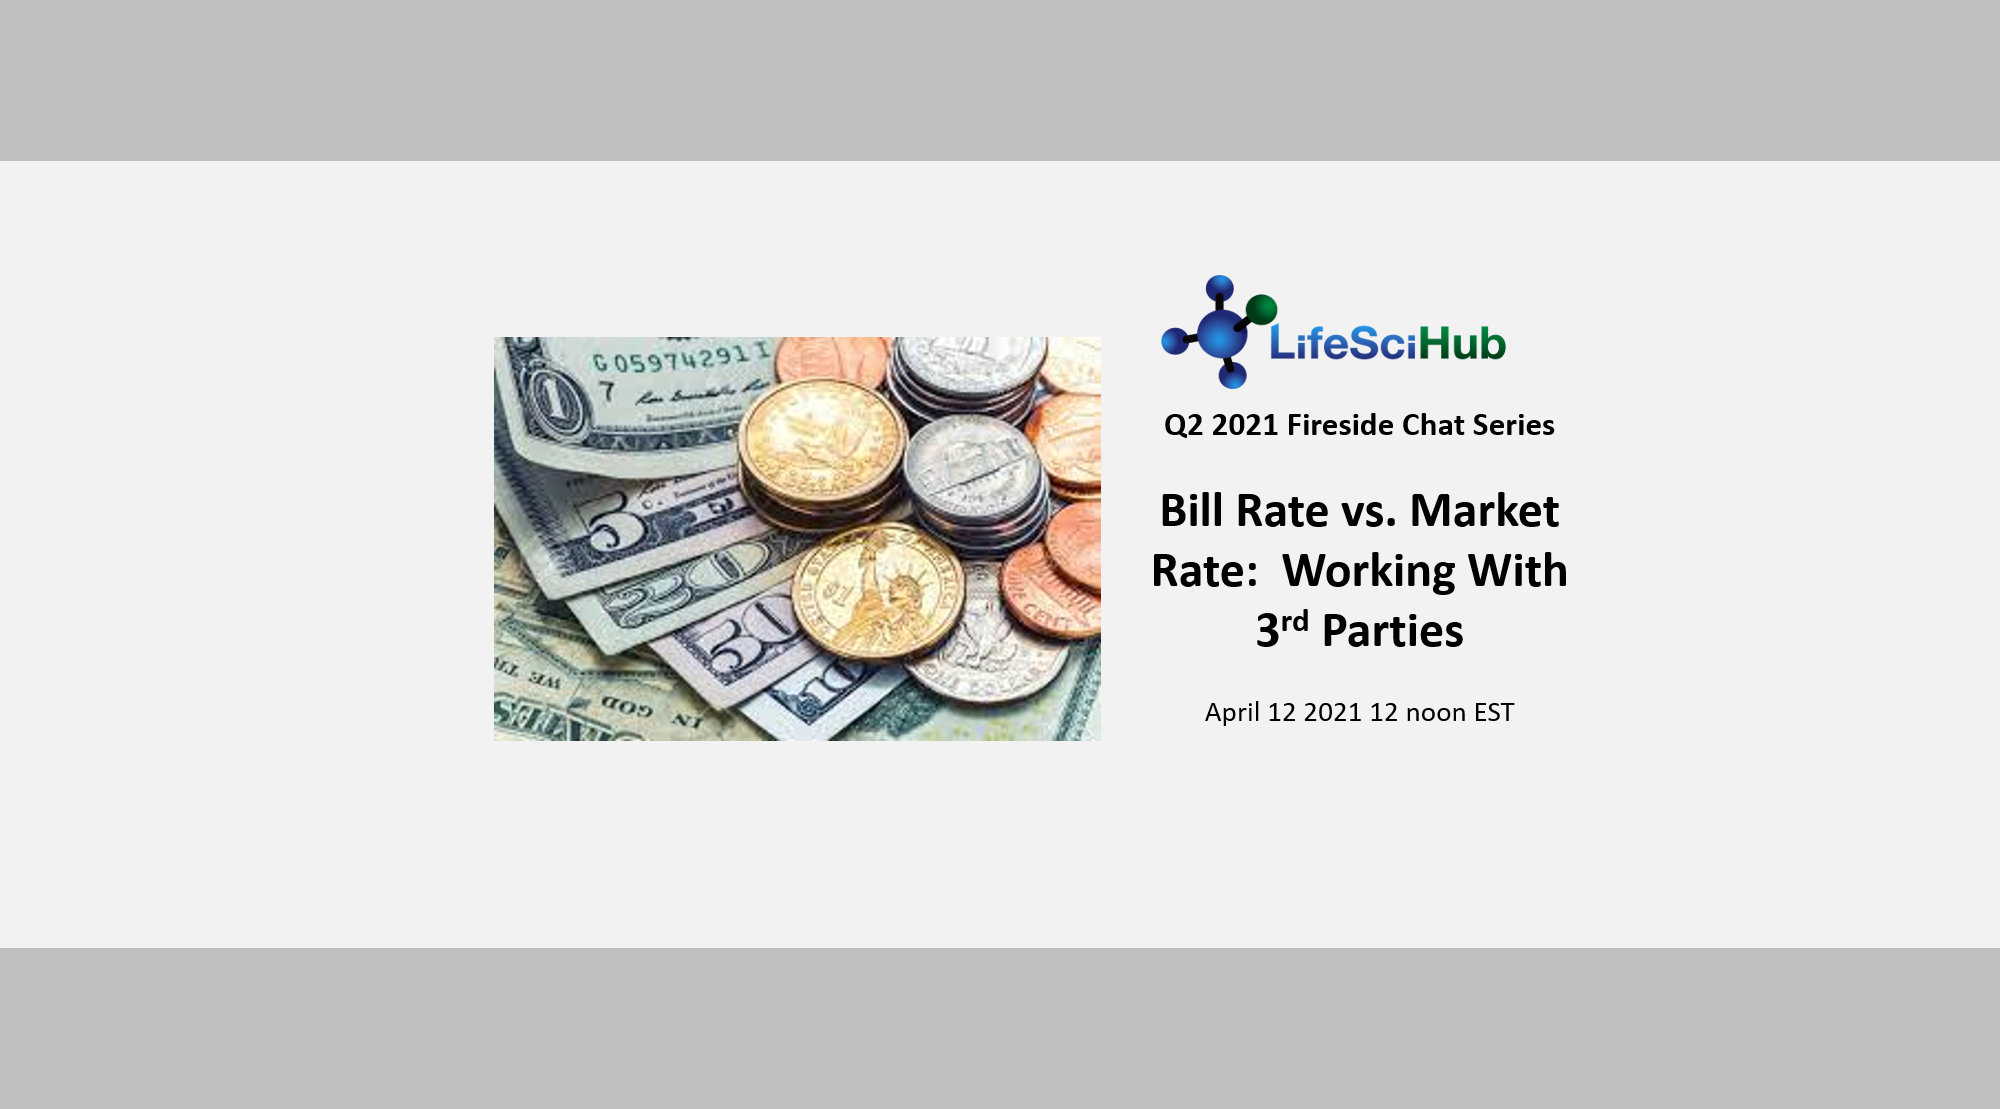 Bill Rate vs. Market Rate:  Working With 3rd Parties